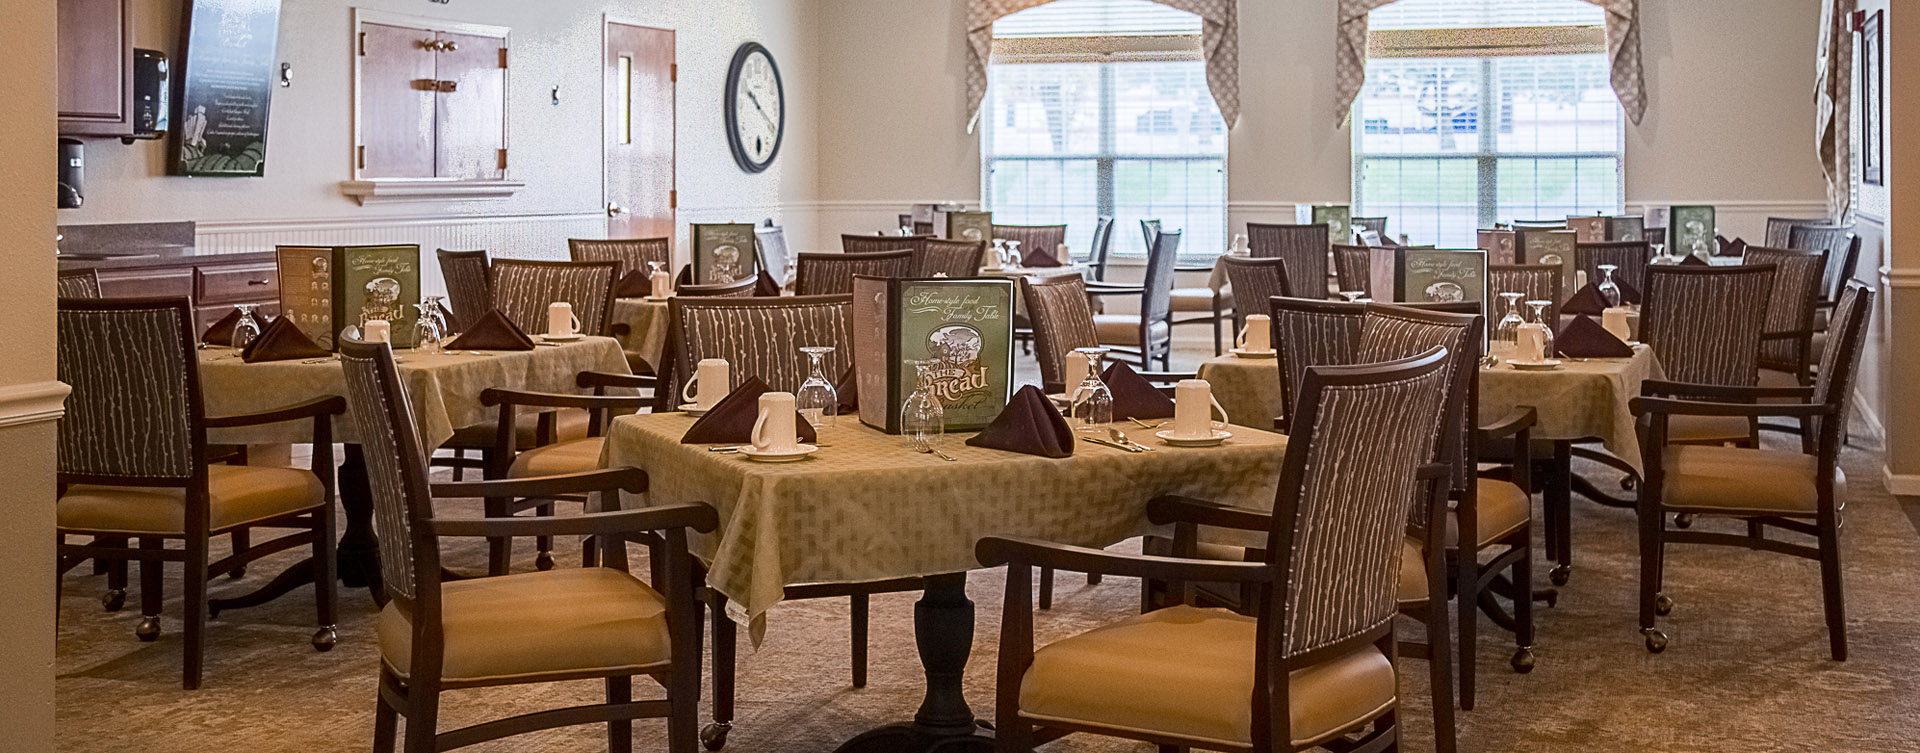 Enjoy homestyle food with made-from-scratch recipes in our dining room at Bickford of Davenport